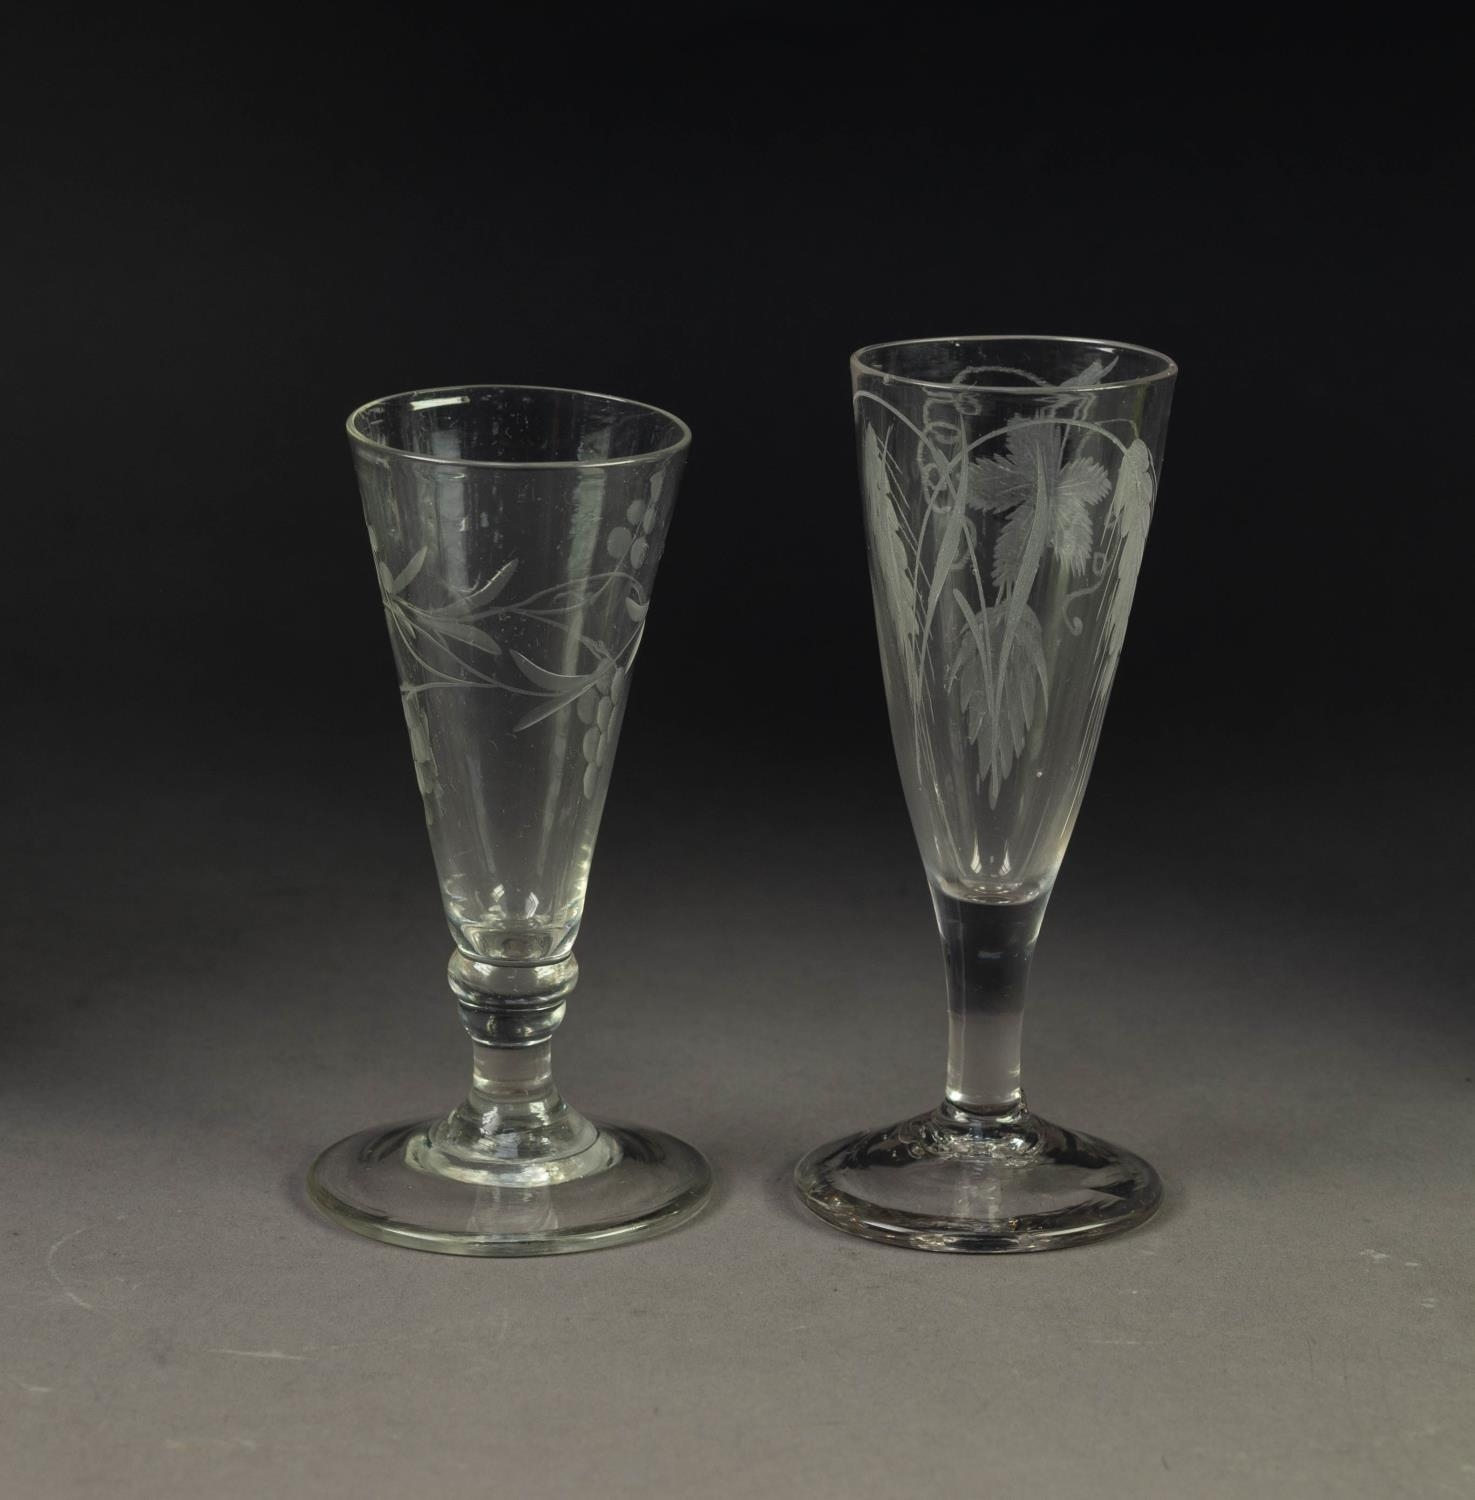 TWO ALE GLASSES WITH ENGRAVED TRUMPET SHAPED BOWLS, each wheel cut with fruiting vines, 6? (15.